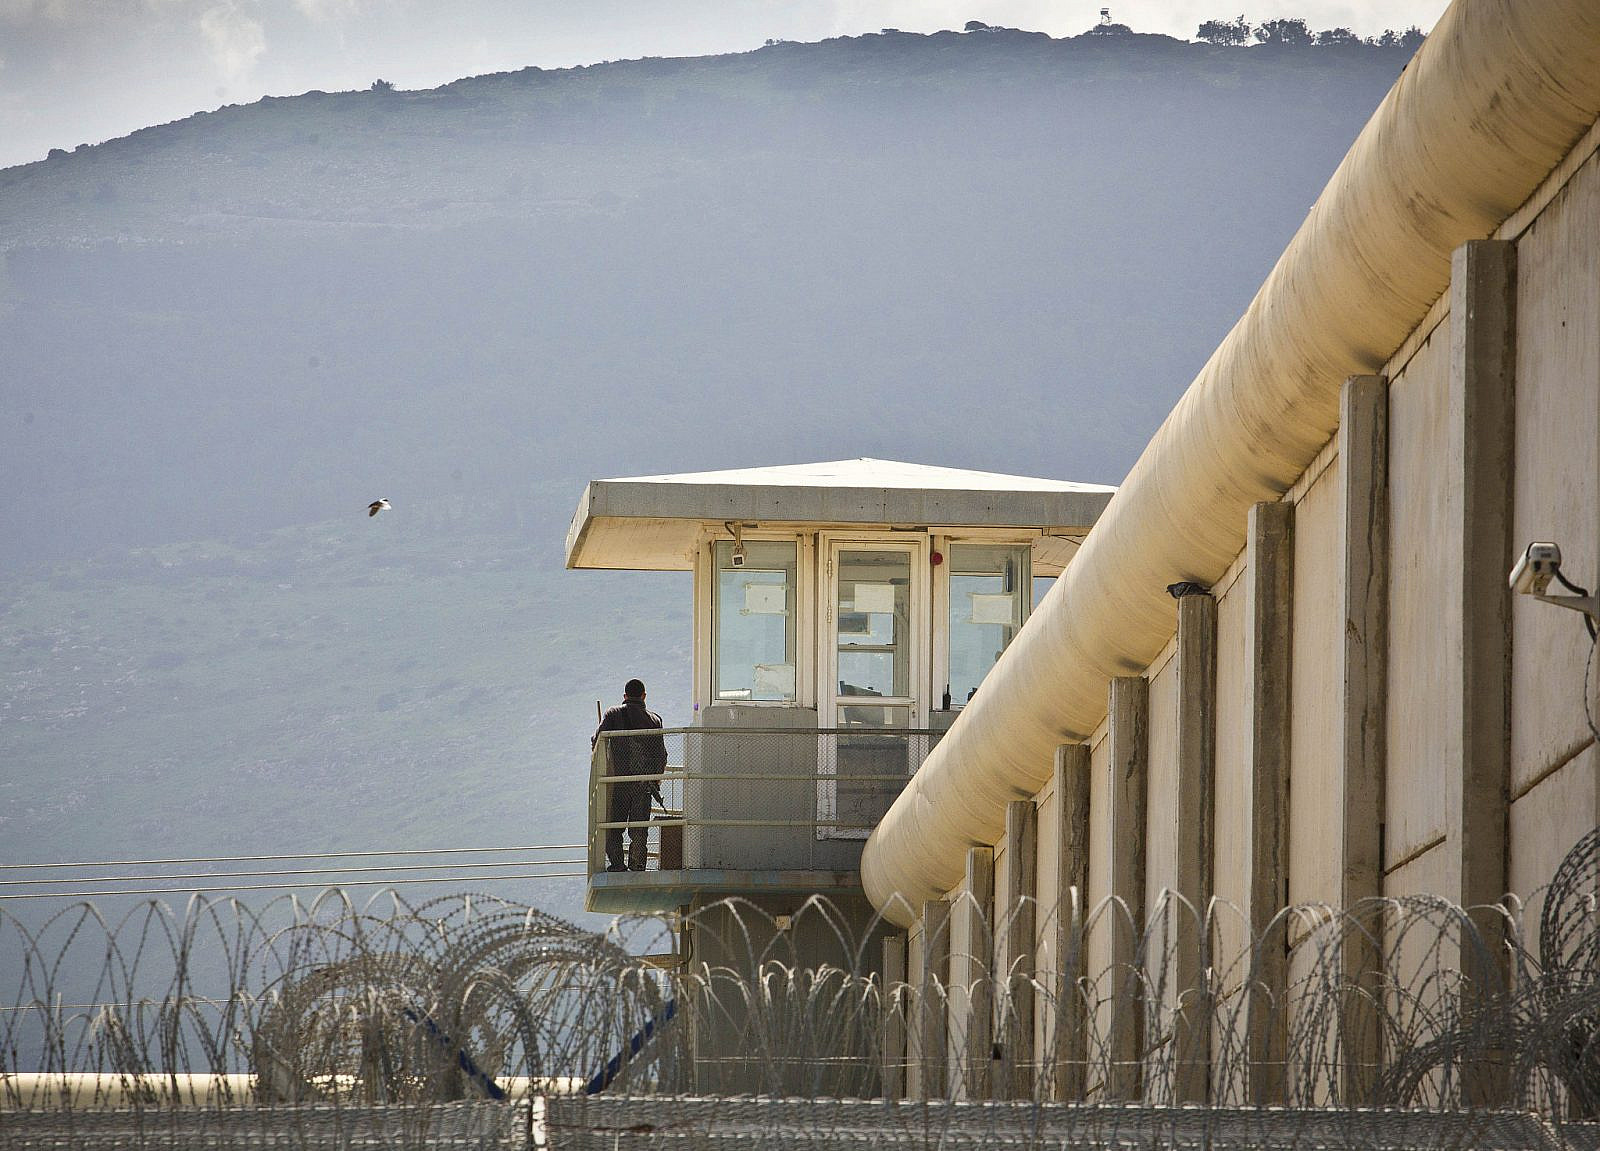 An Israeli prison guard seen on duty at a watch tower at Gilboa Prison, February 28, 2013. (Moshe Shai/Flash90)